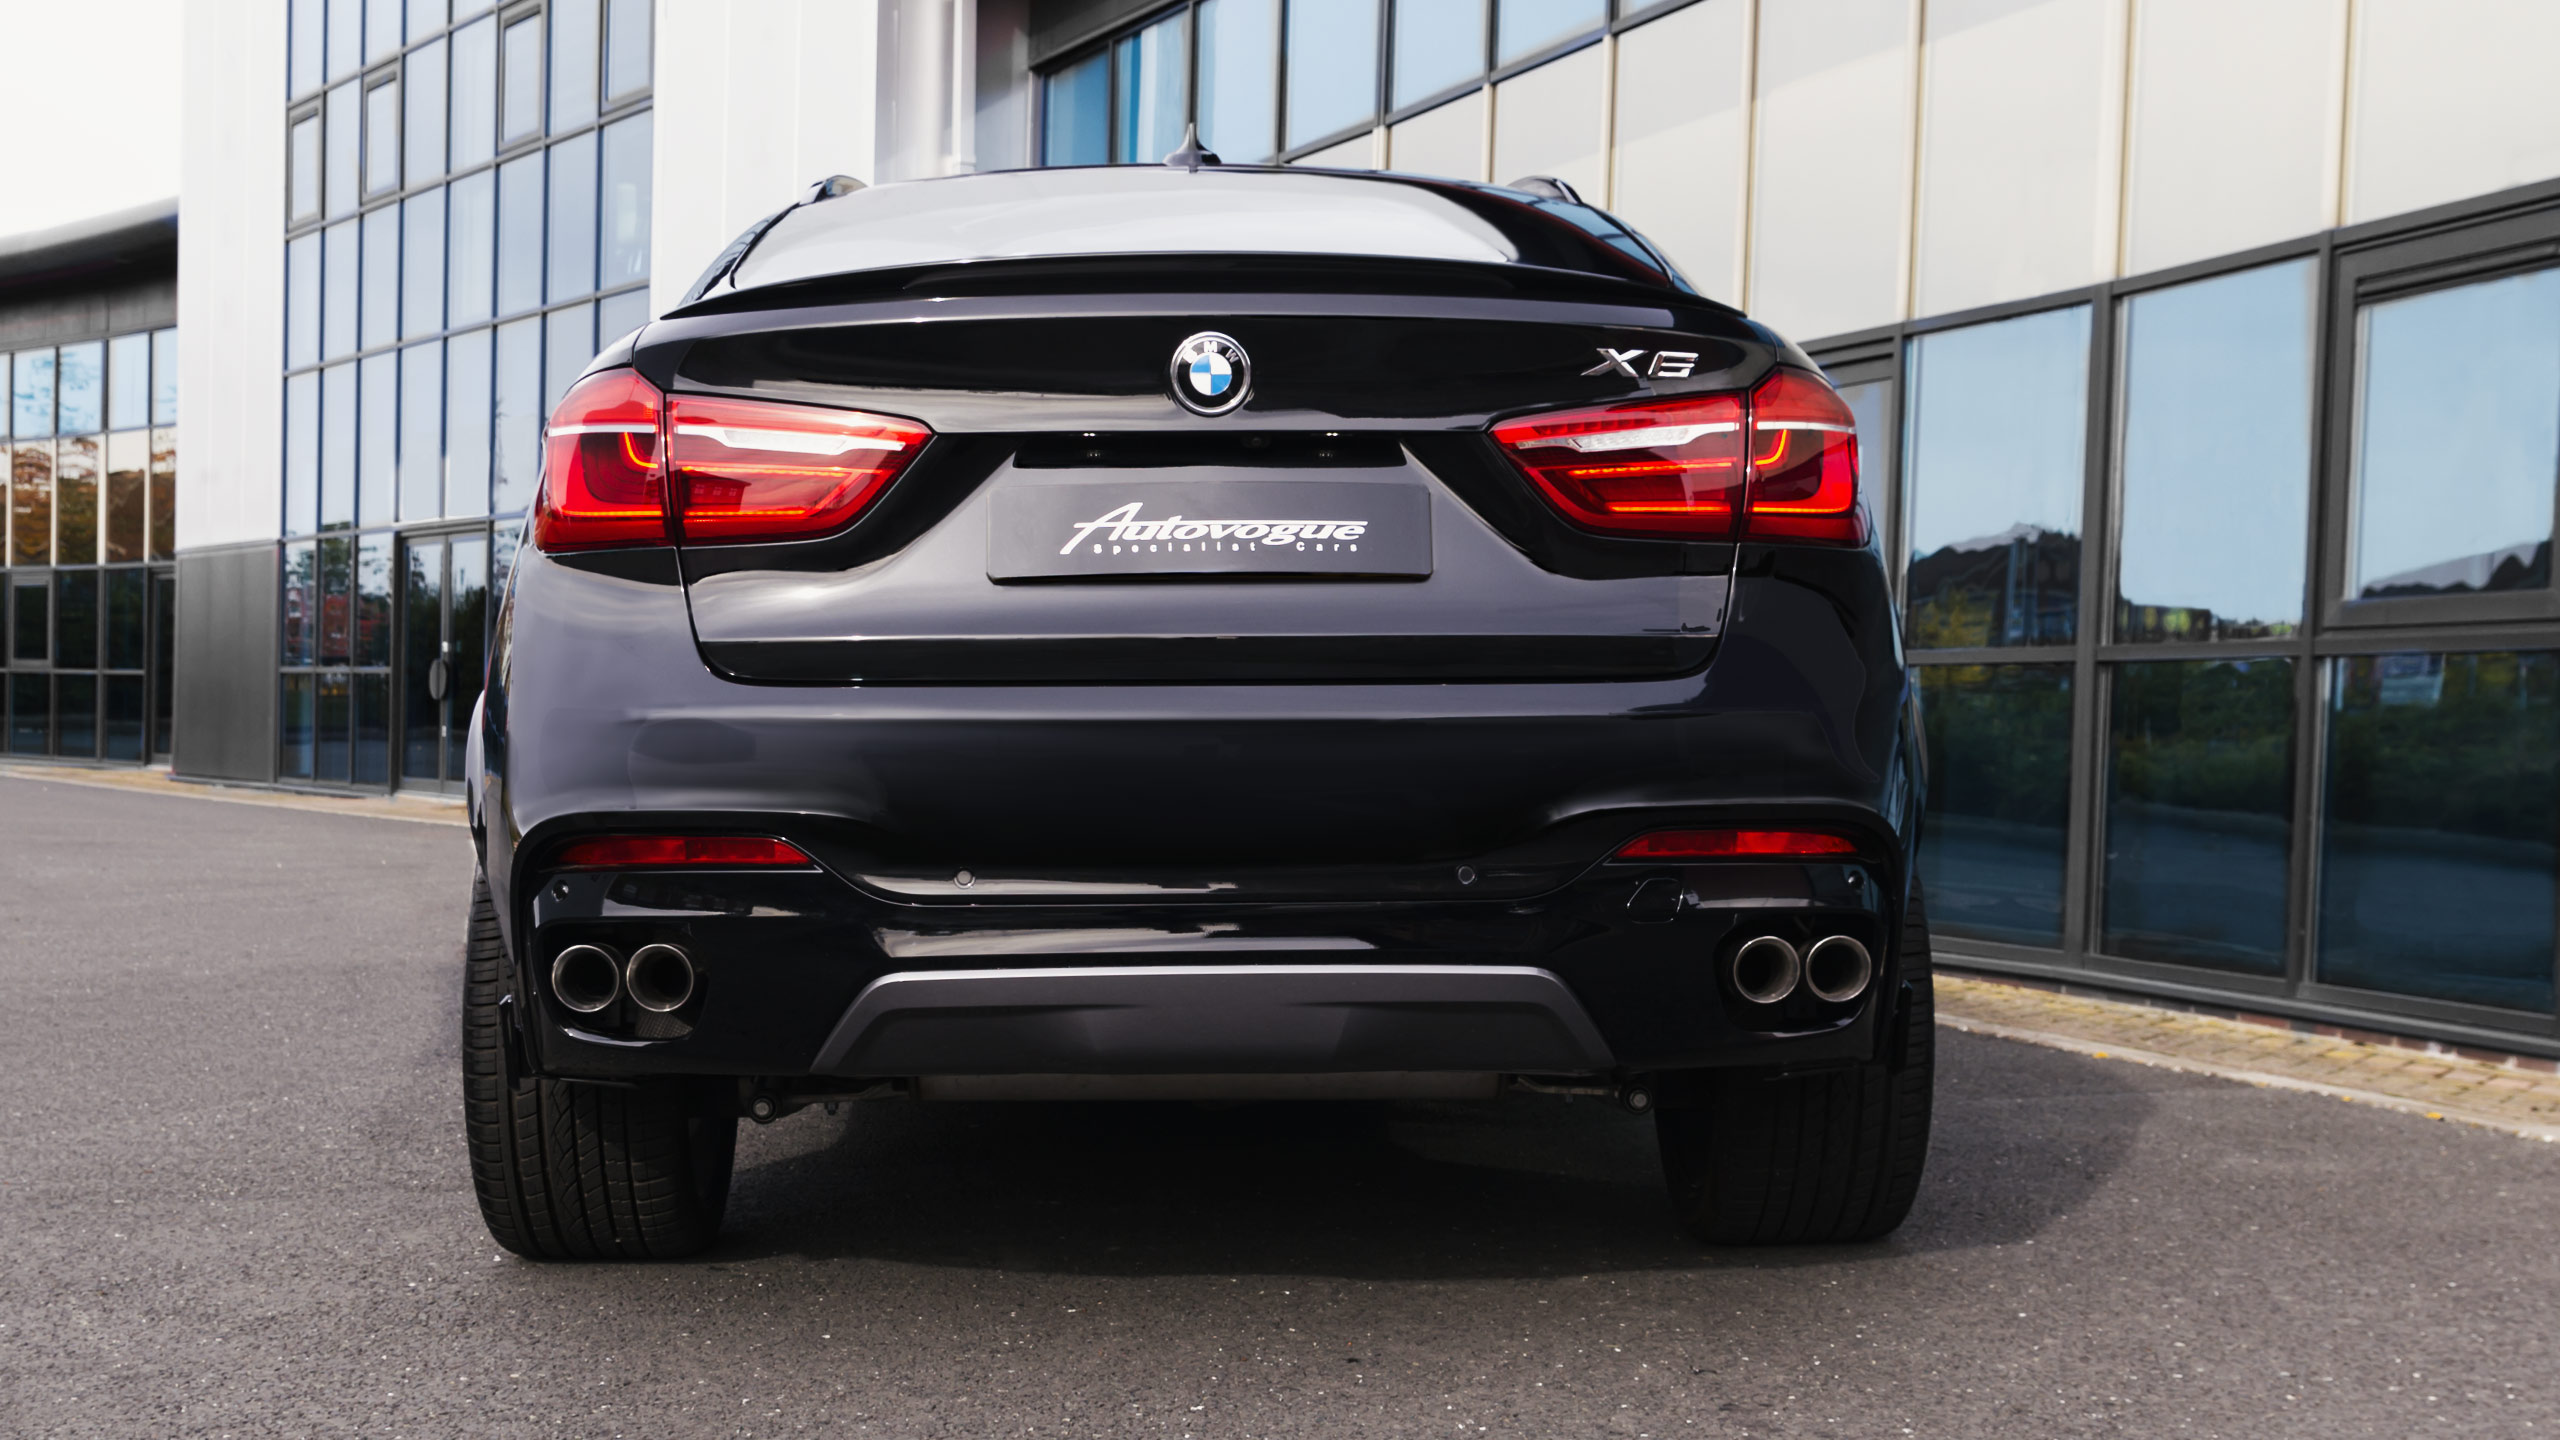 Coming Soon Bmw X6 F16 Autovogue Bespoke